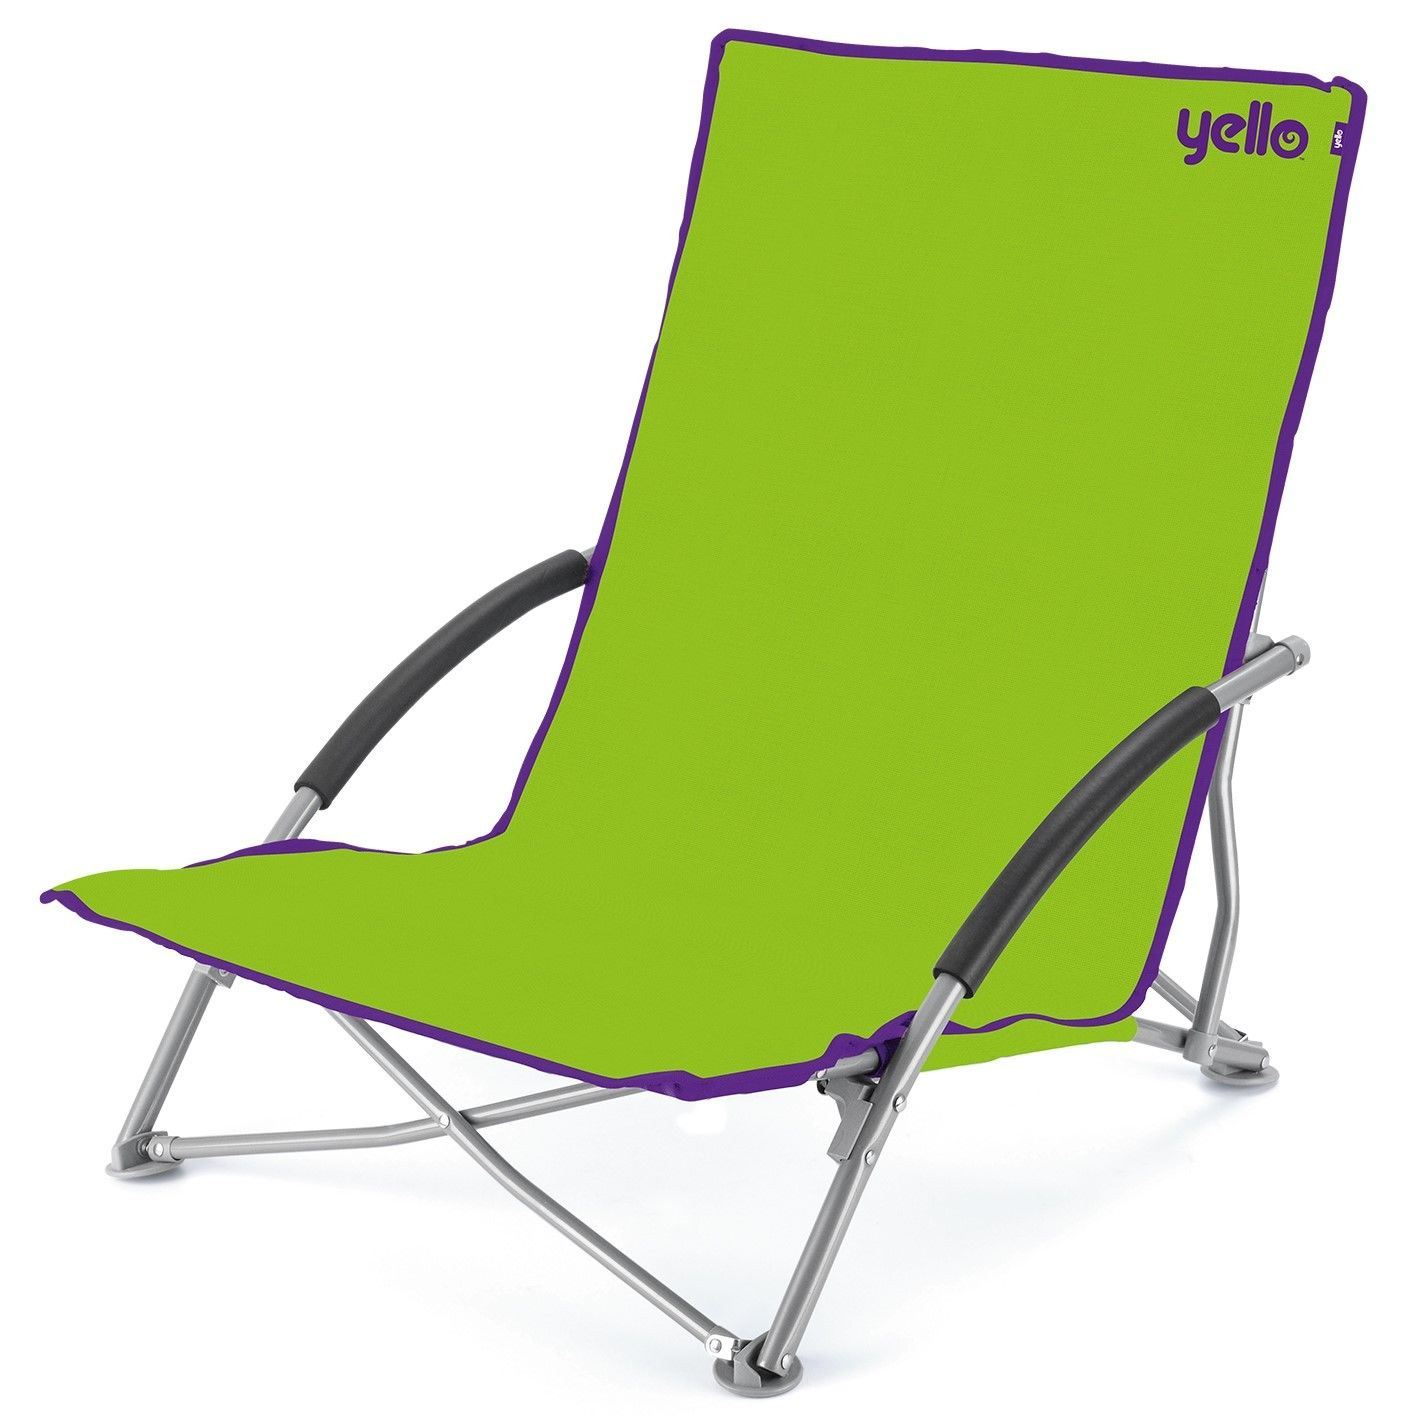 Low Folding Beach Chair Details About Yello Low Folding Beach Chair Camping Festival Beach Pool Picnic Deckchair